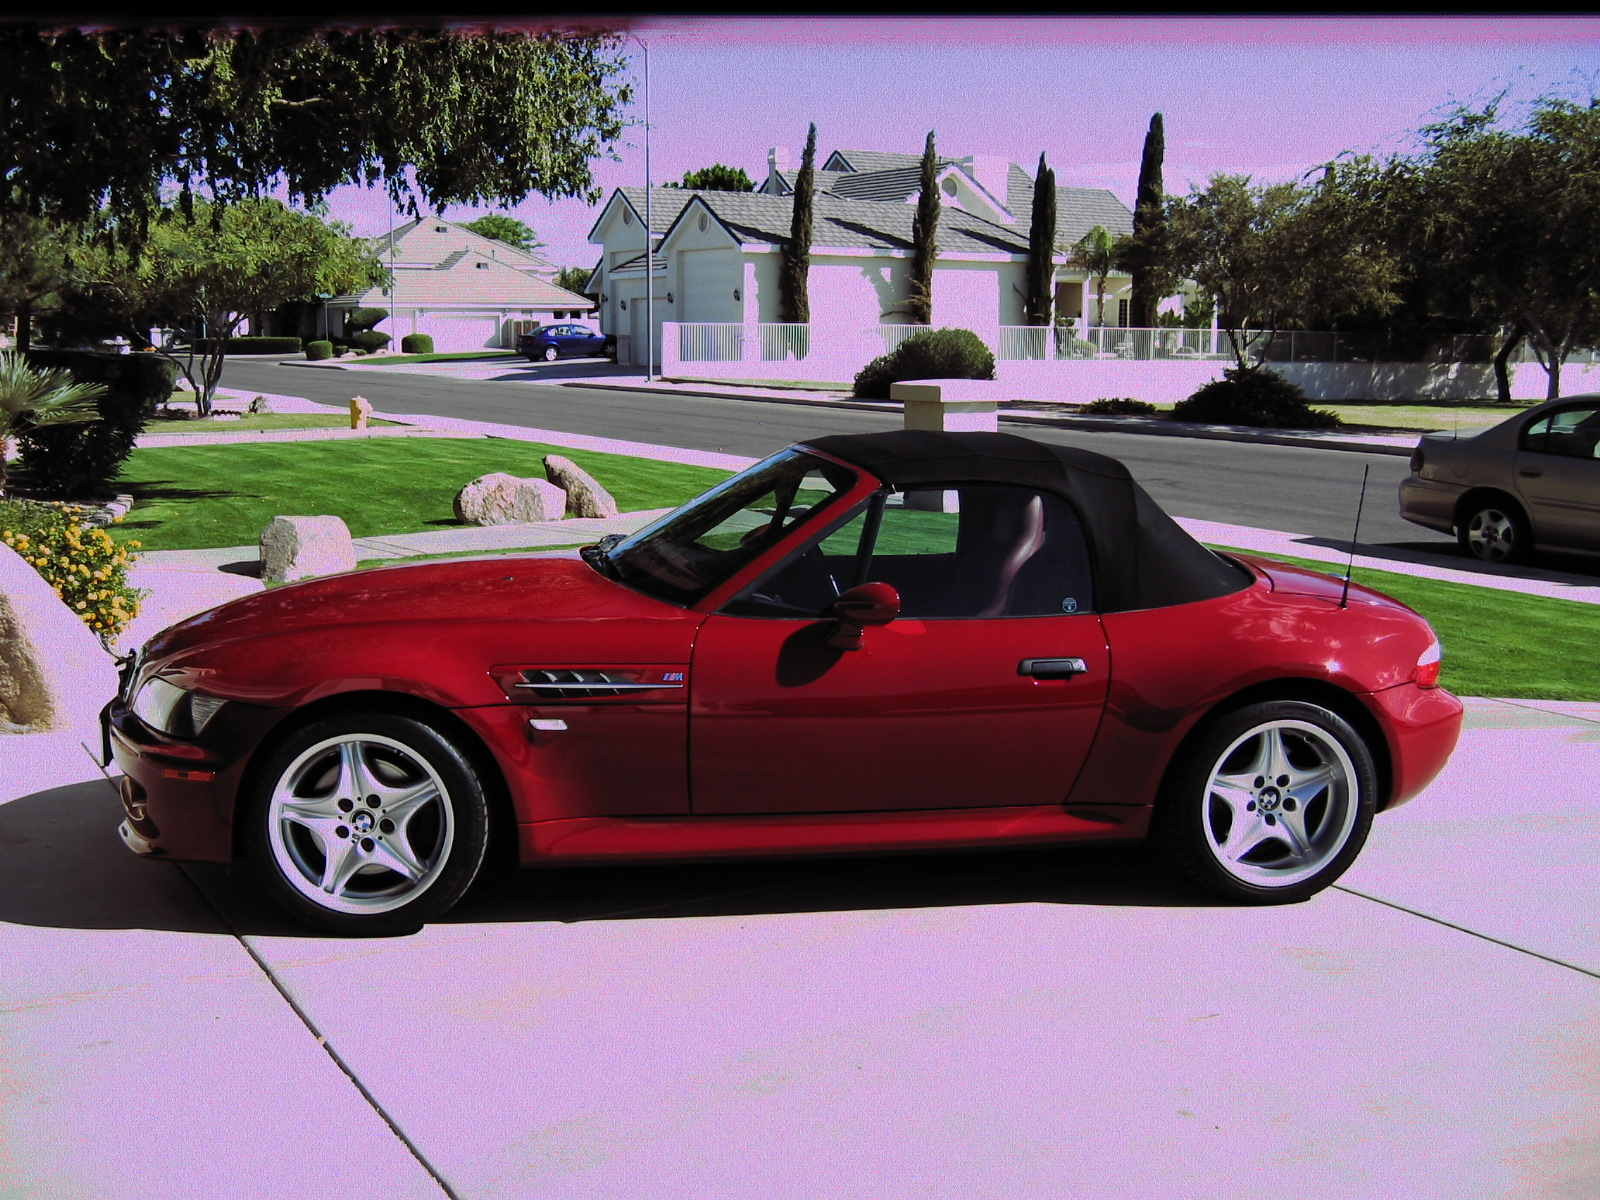 1999 Bmw M Roadster Z3 Imola Red 2dr Convertible Sold For 13 950 00 Carol Smith S Asset